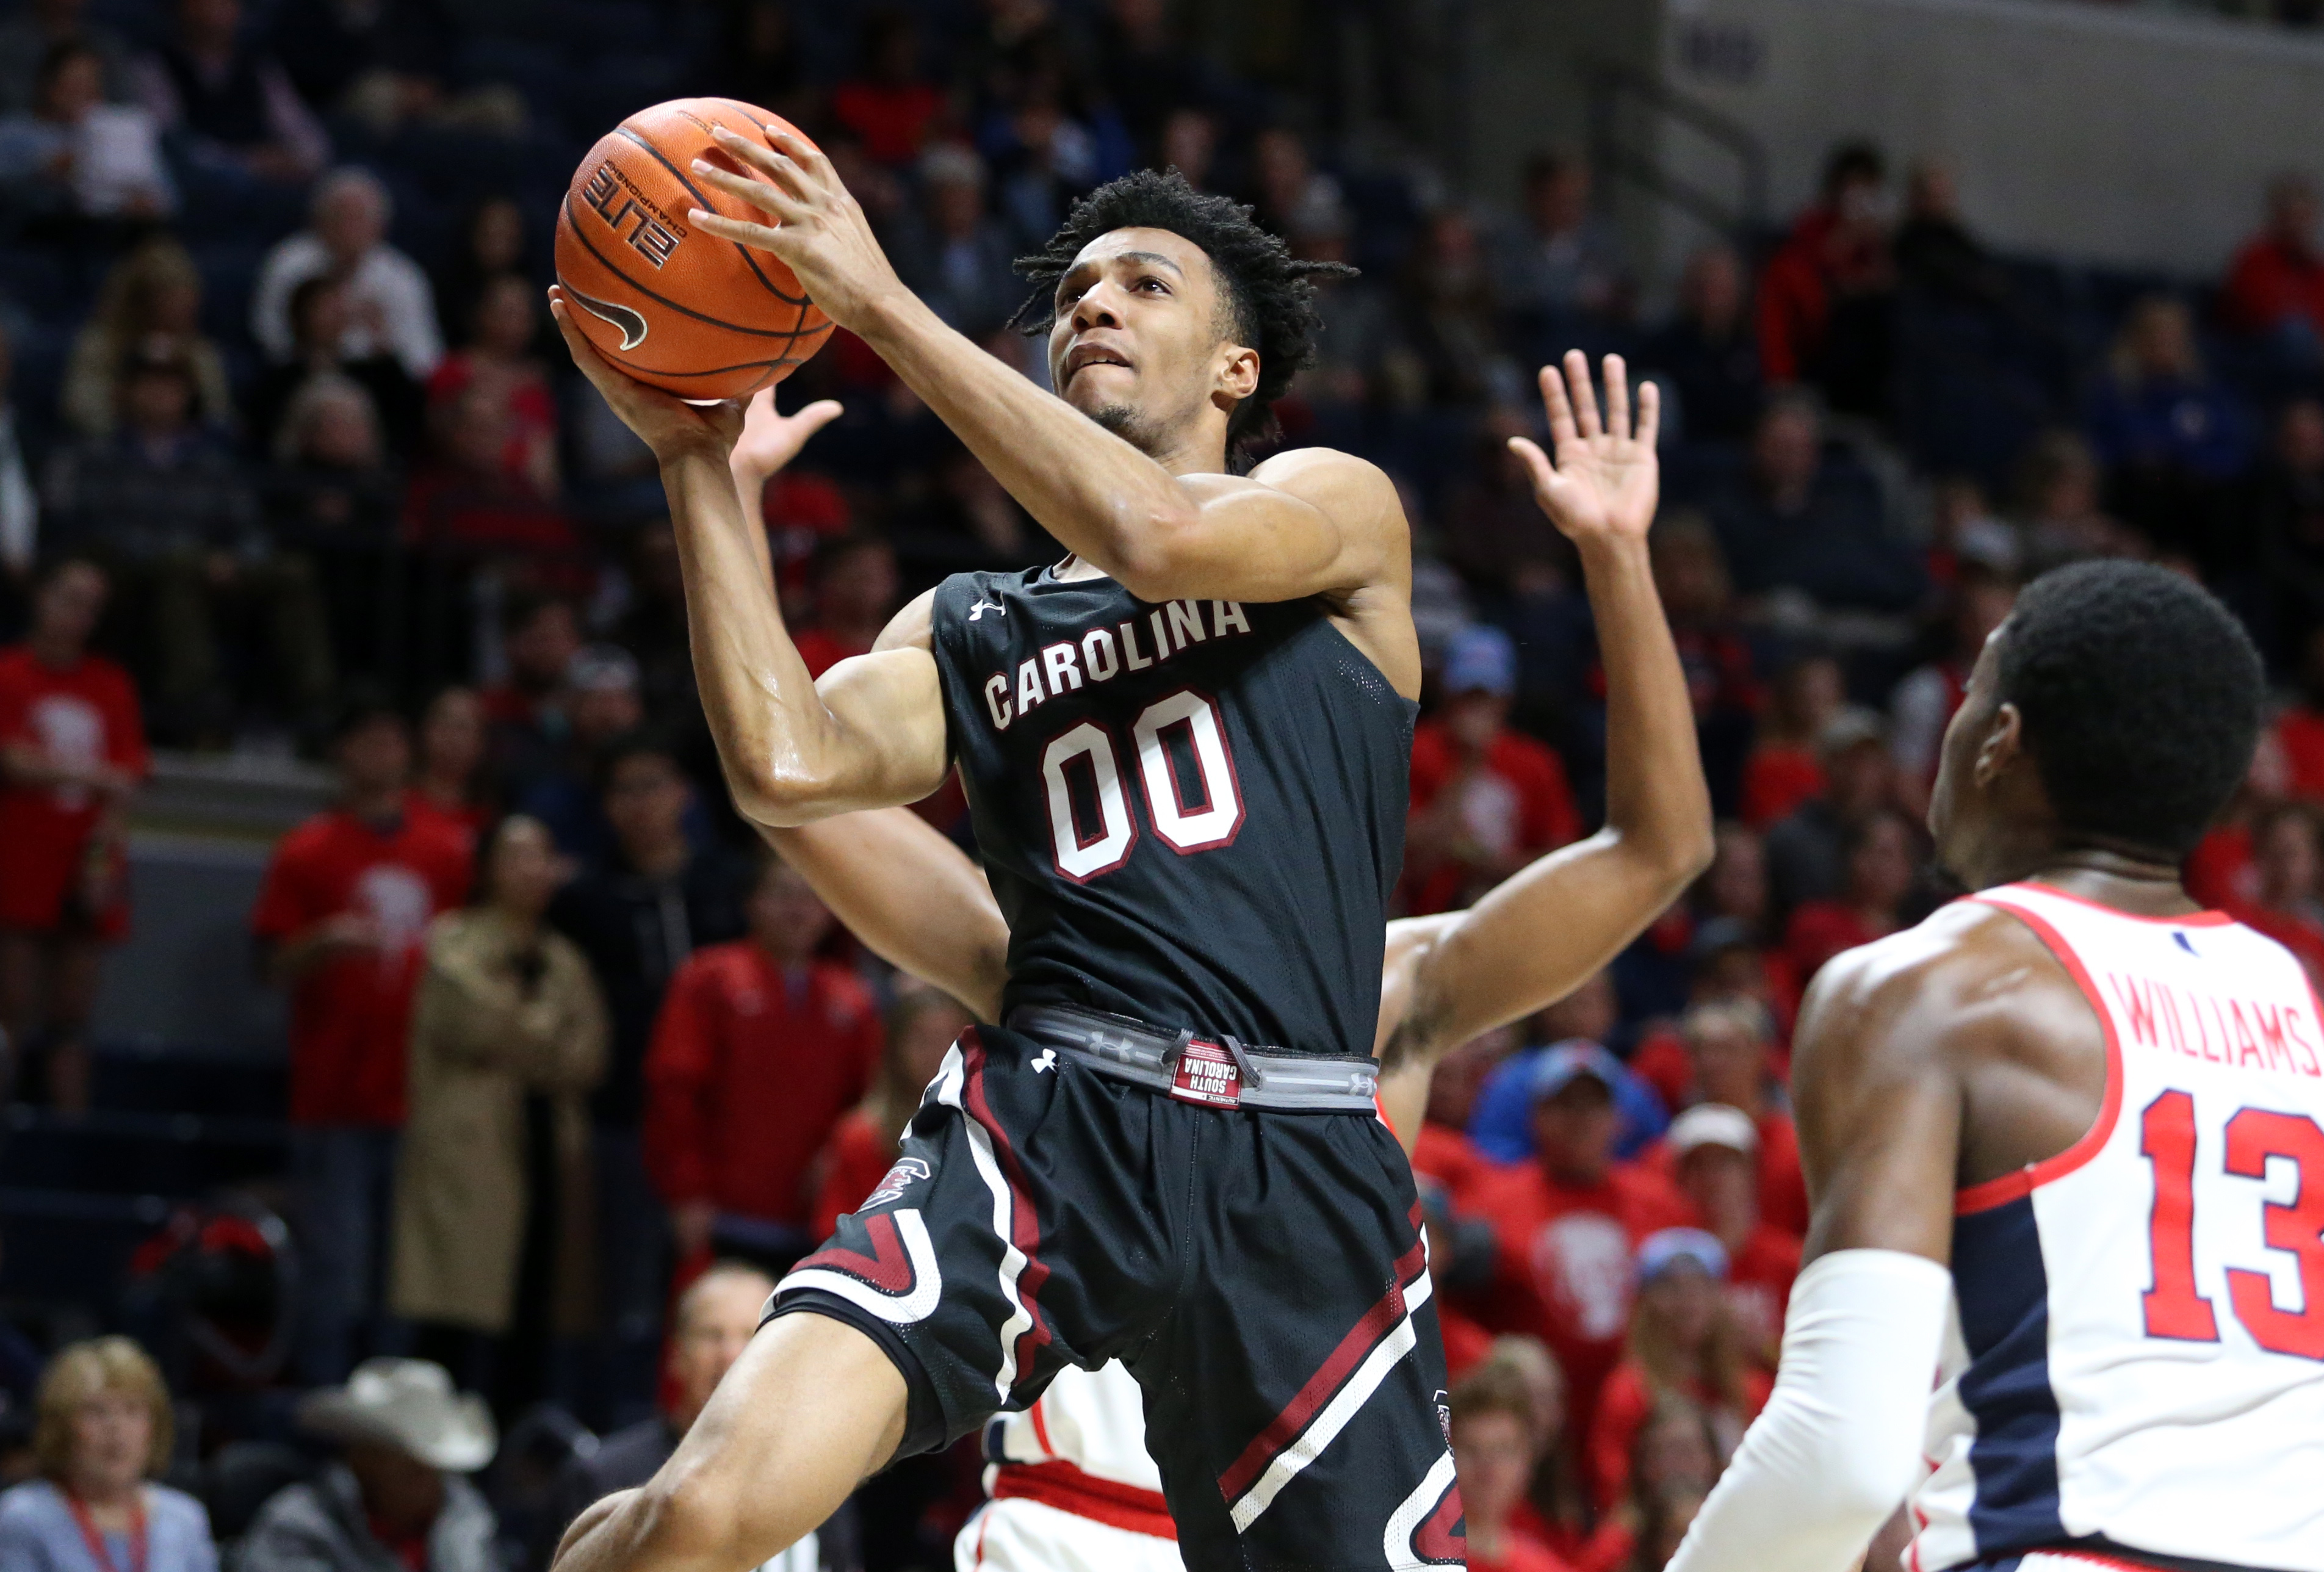 Feb 5, 2020; Oxford, Mississippi, USA; South Carolina Gamecocks guard AJ Lawson (00) shoots during the first half against the Mississippi Rebels at The Pavilion at Ole Miss.